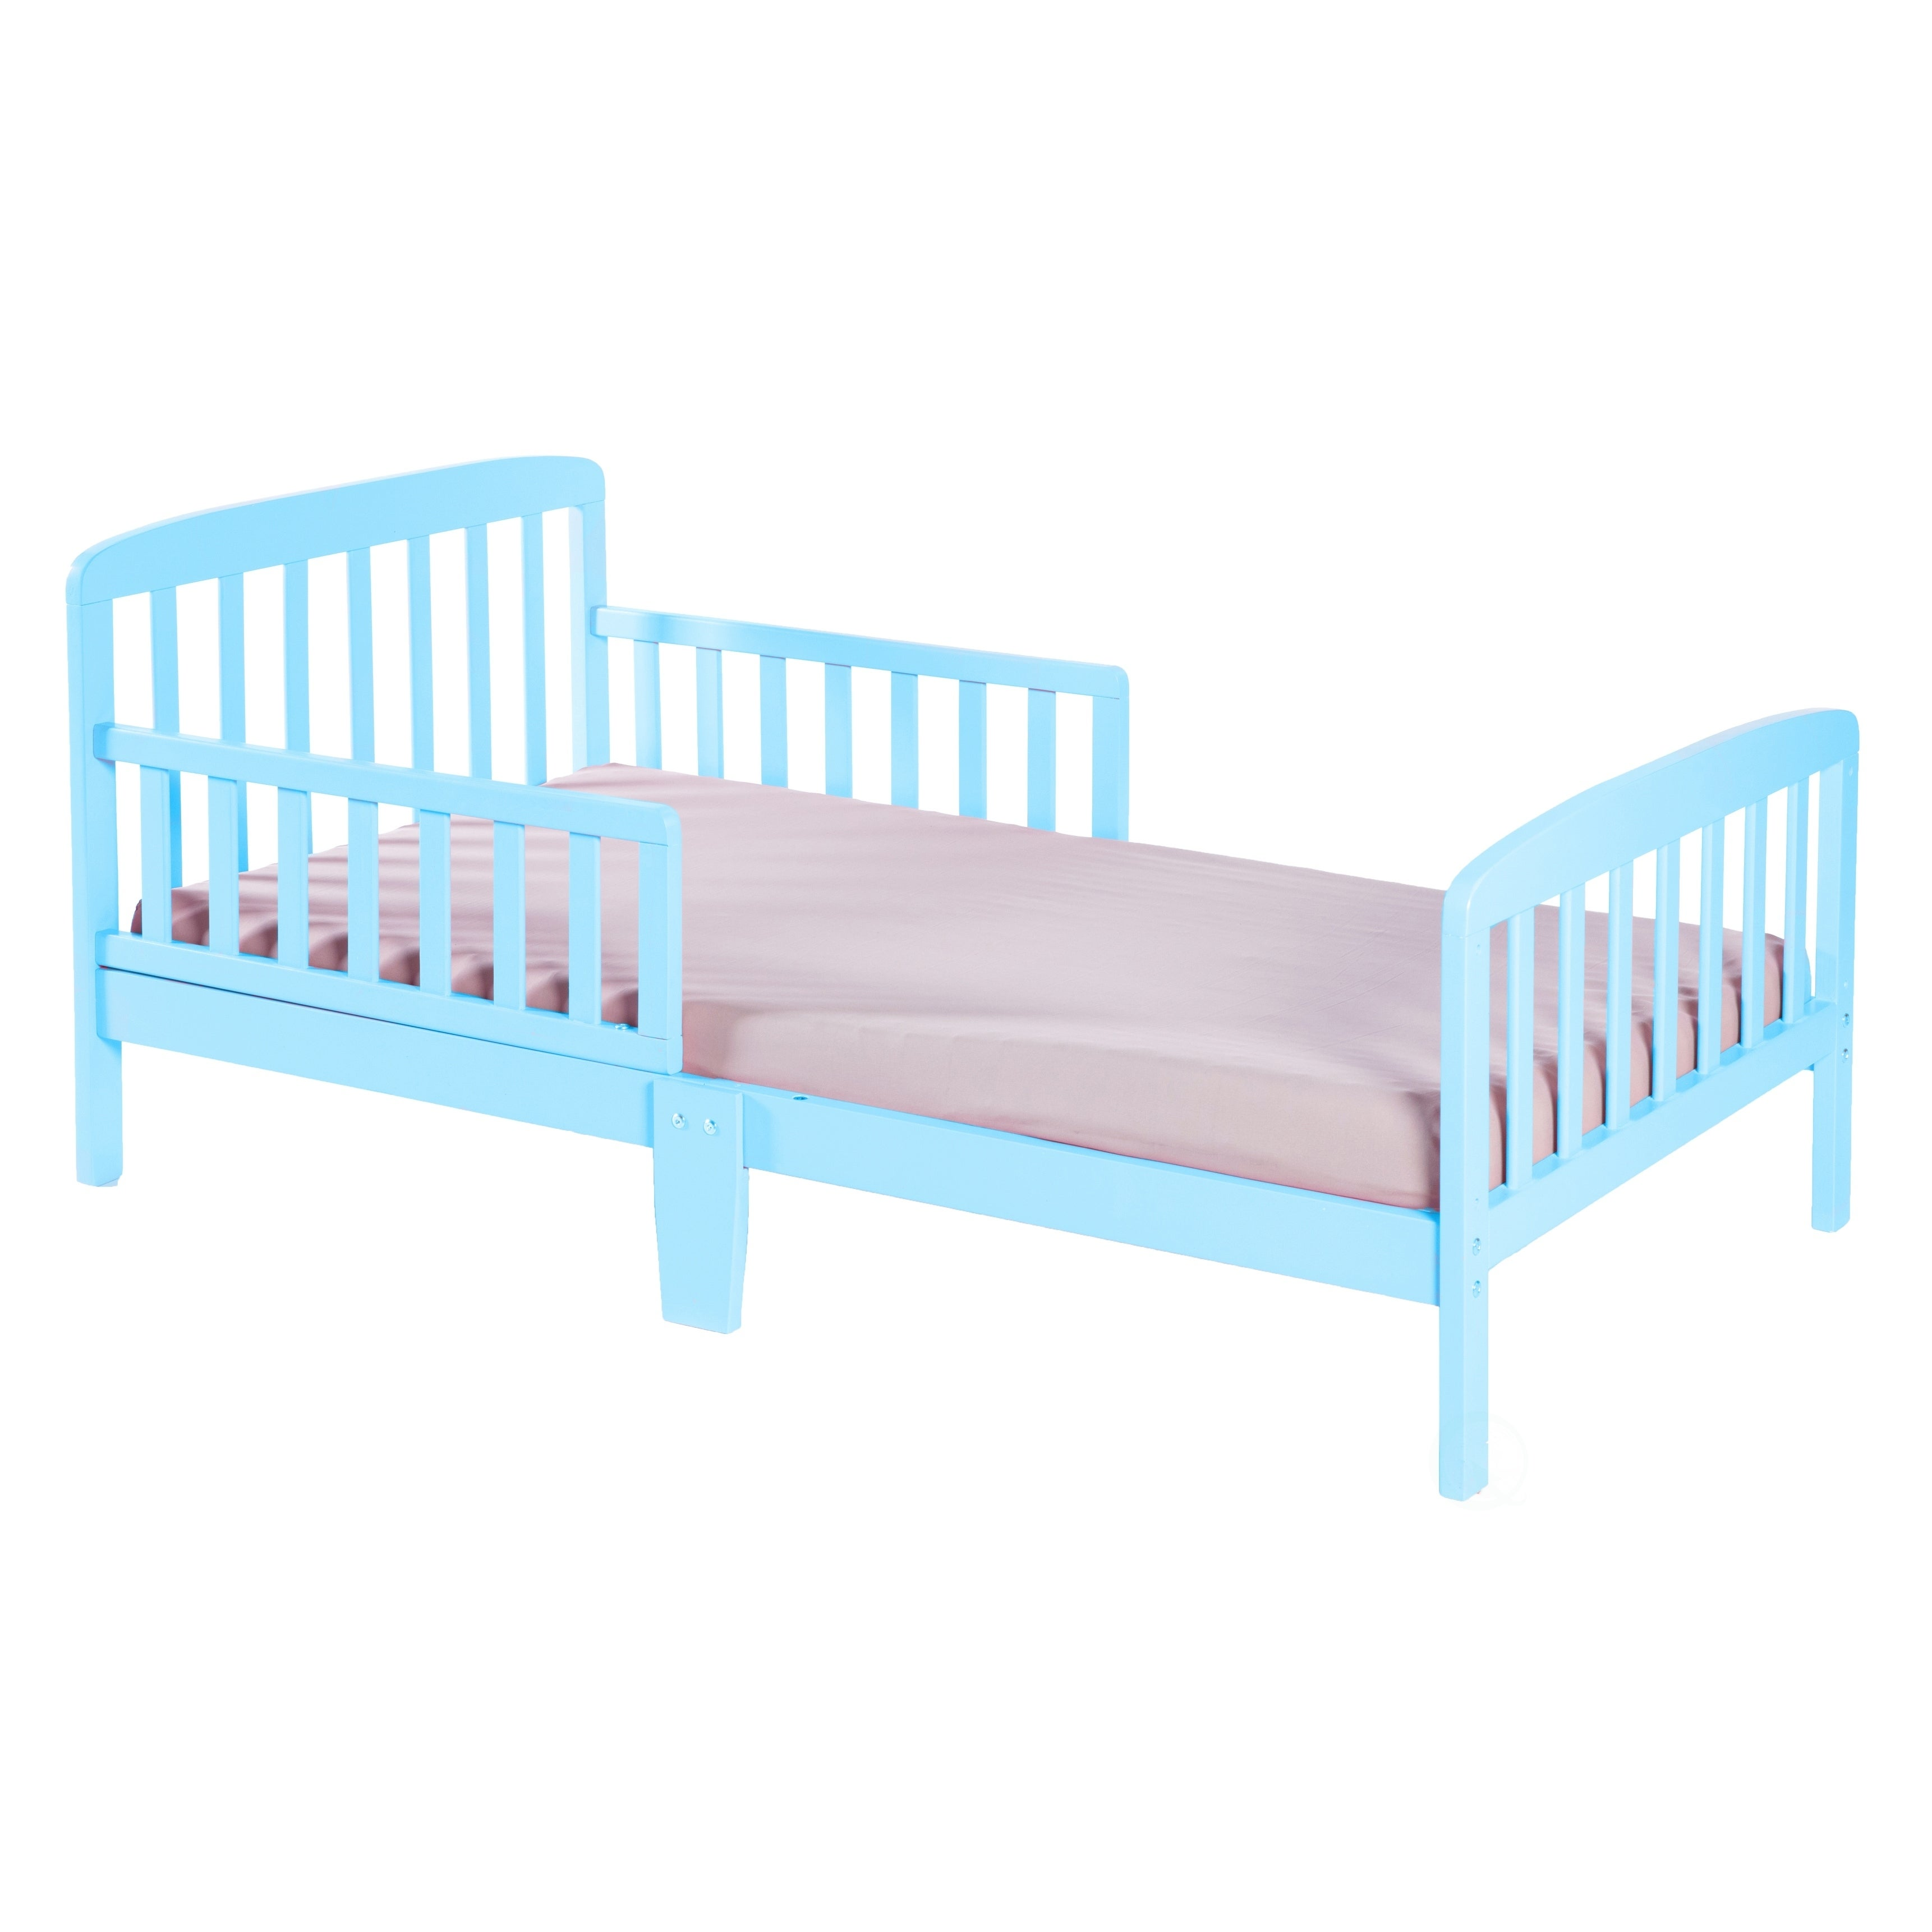 Classic Wooden Boys Girls Toddler Kids Bed Frame With Double Adjustable Guard Rails On Sale Overstock 29158764